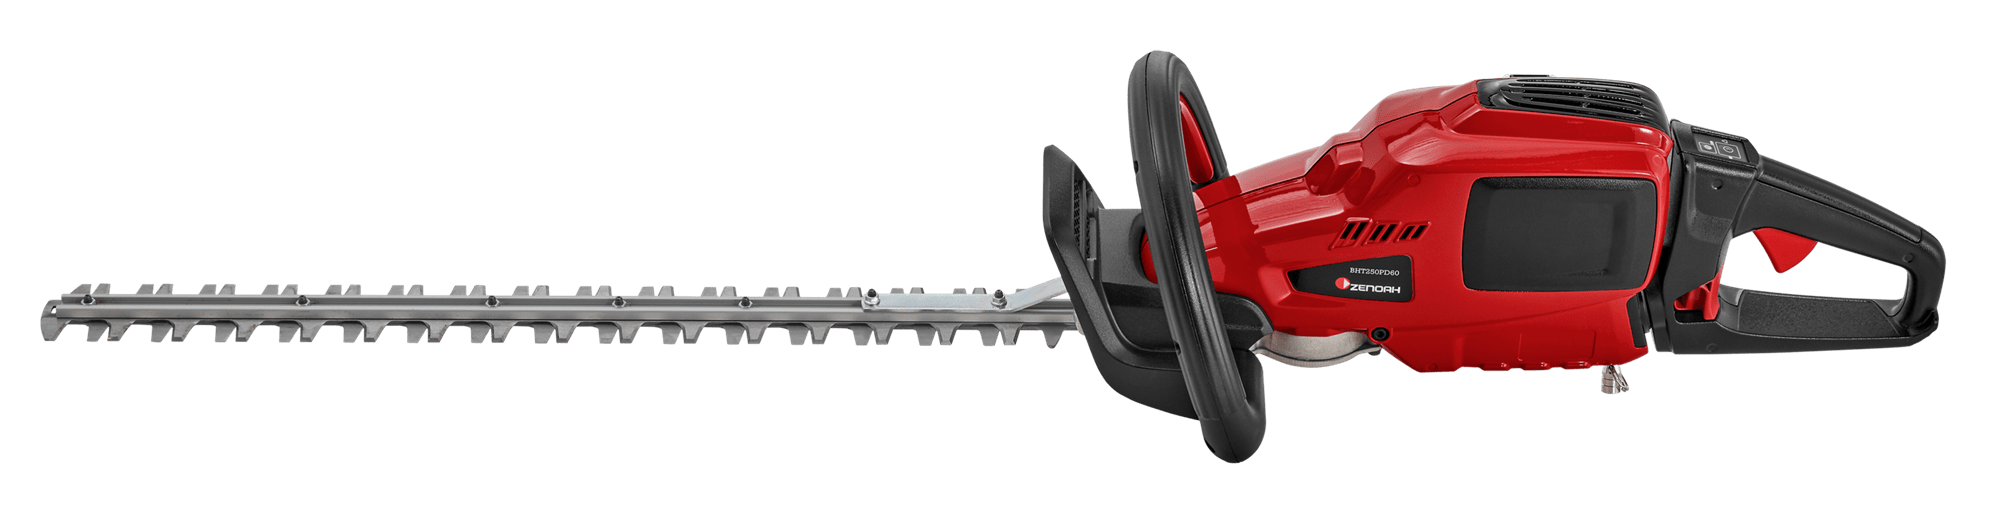 BHT250PD60 Hedge trimmer